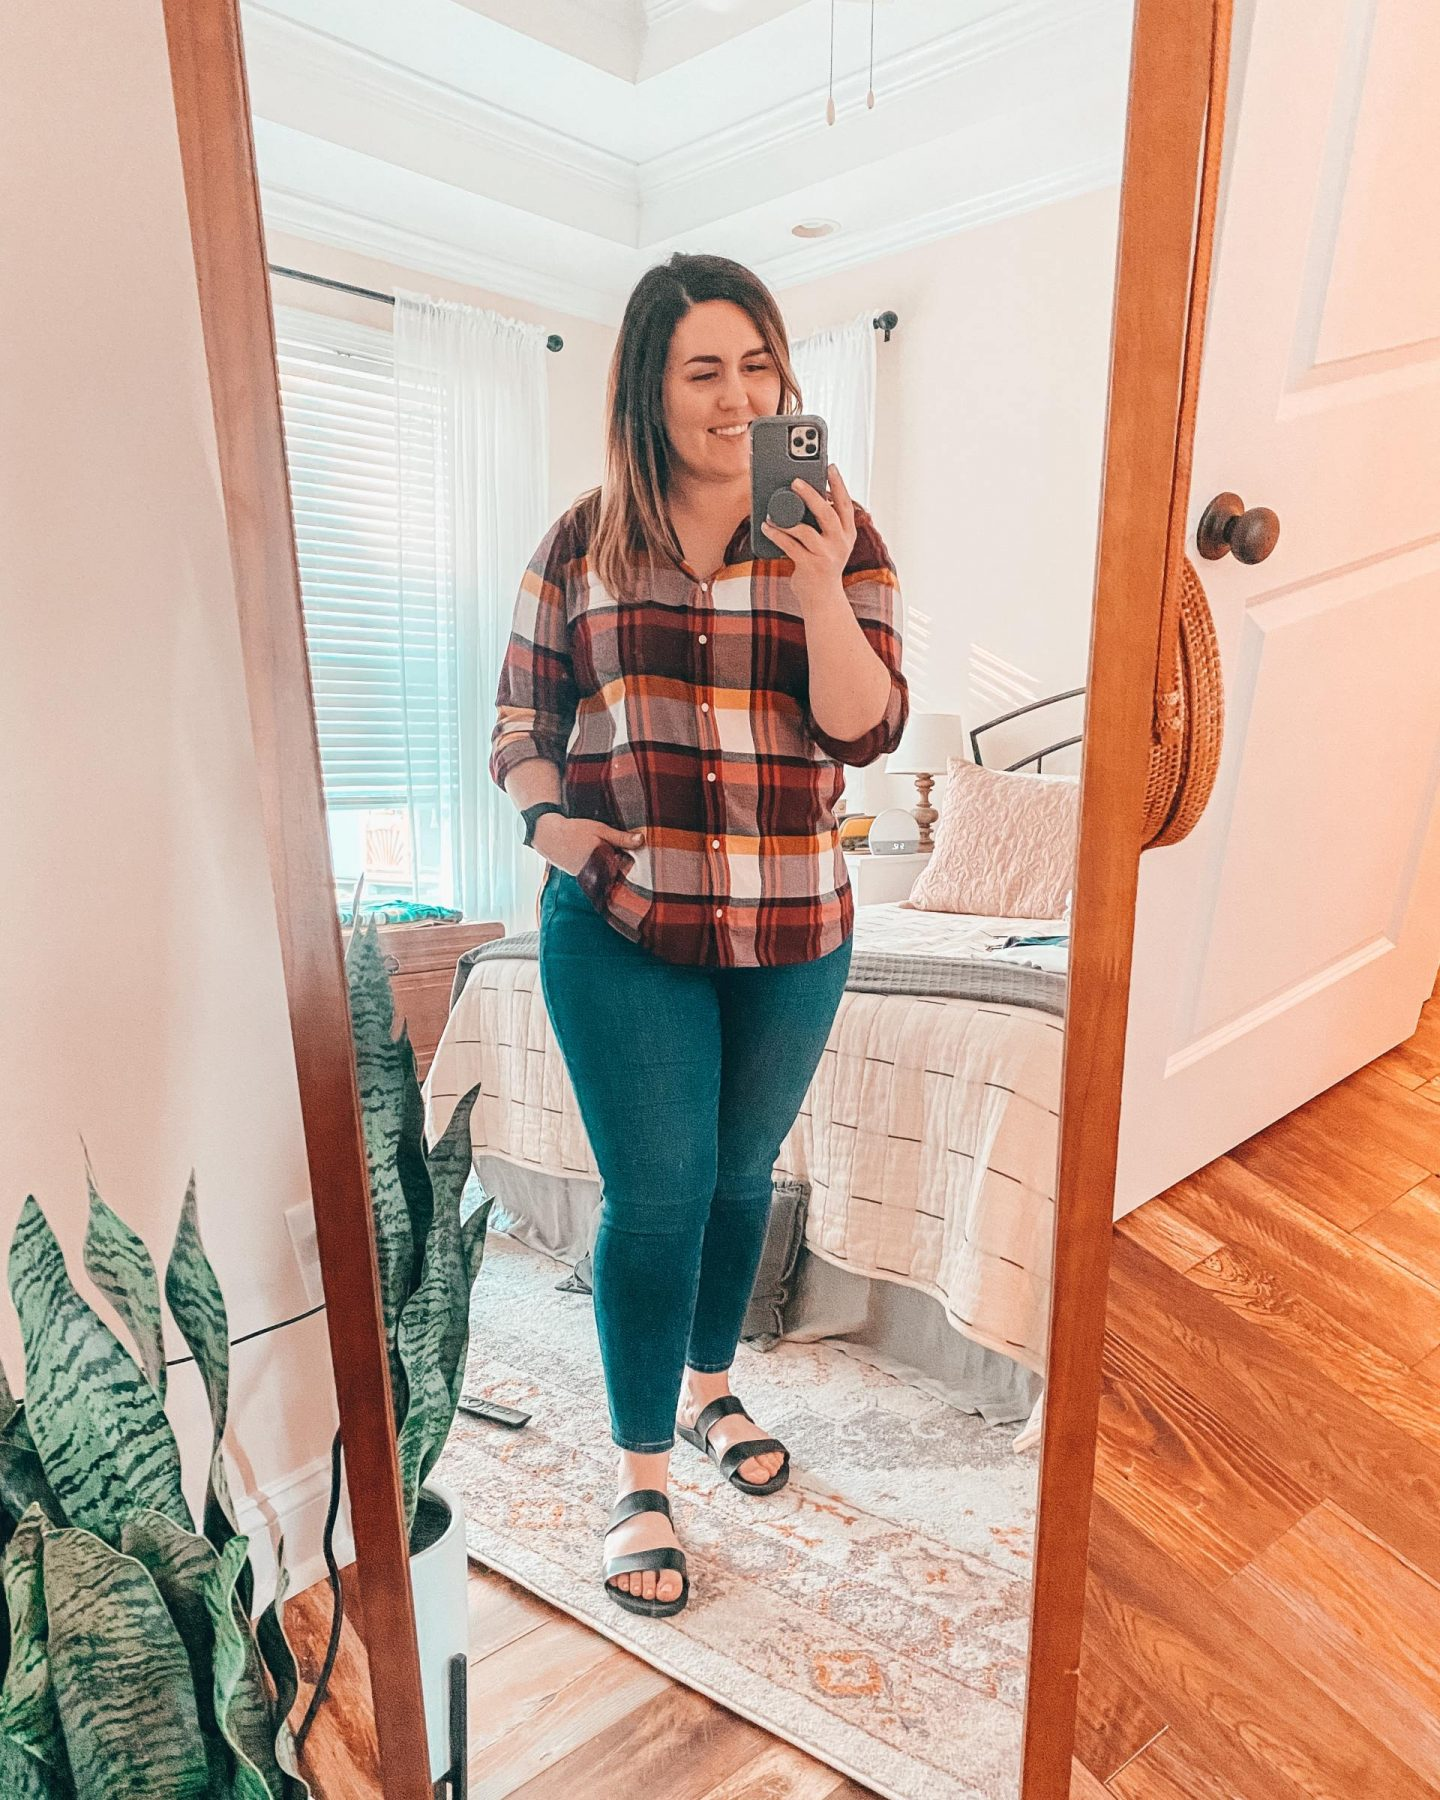 NC blogger Rebecca Lately is sharing her recent outfits from September and October. If you're looking for fall outfit inspiration, click here!